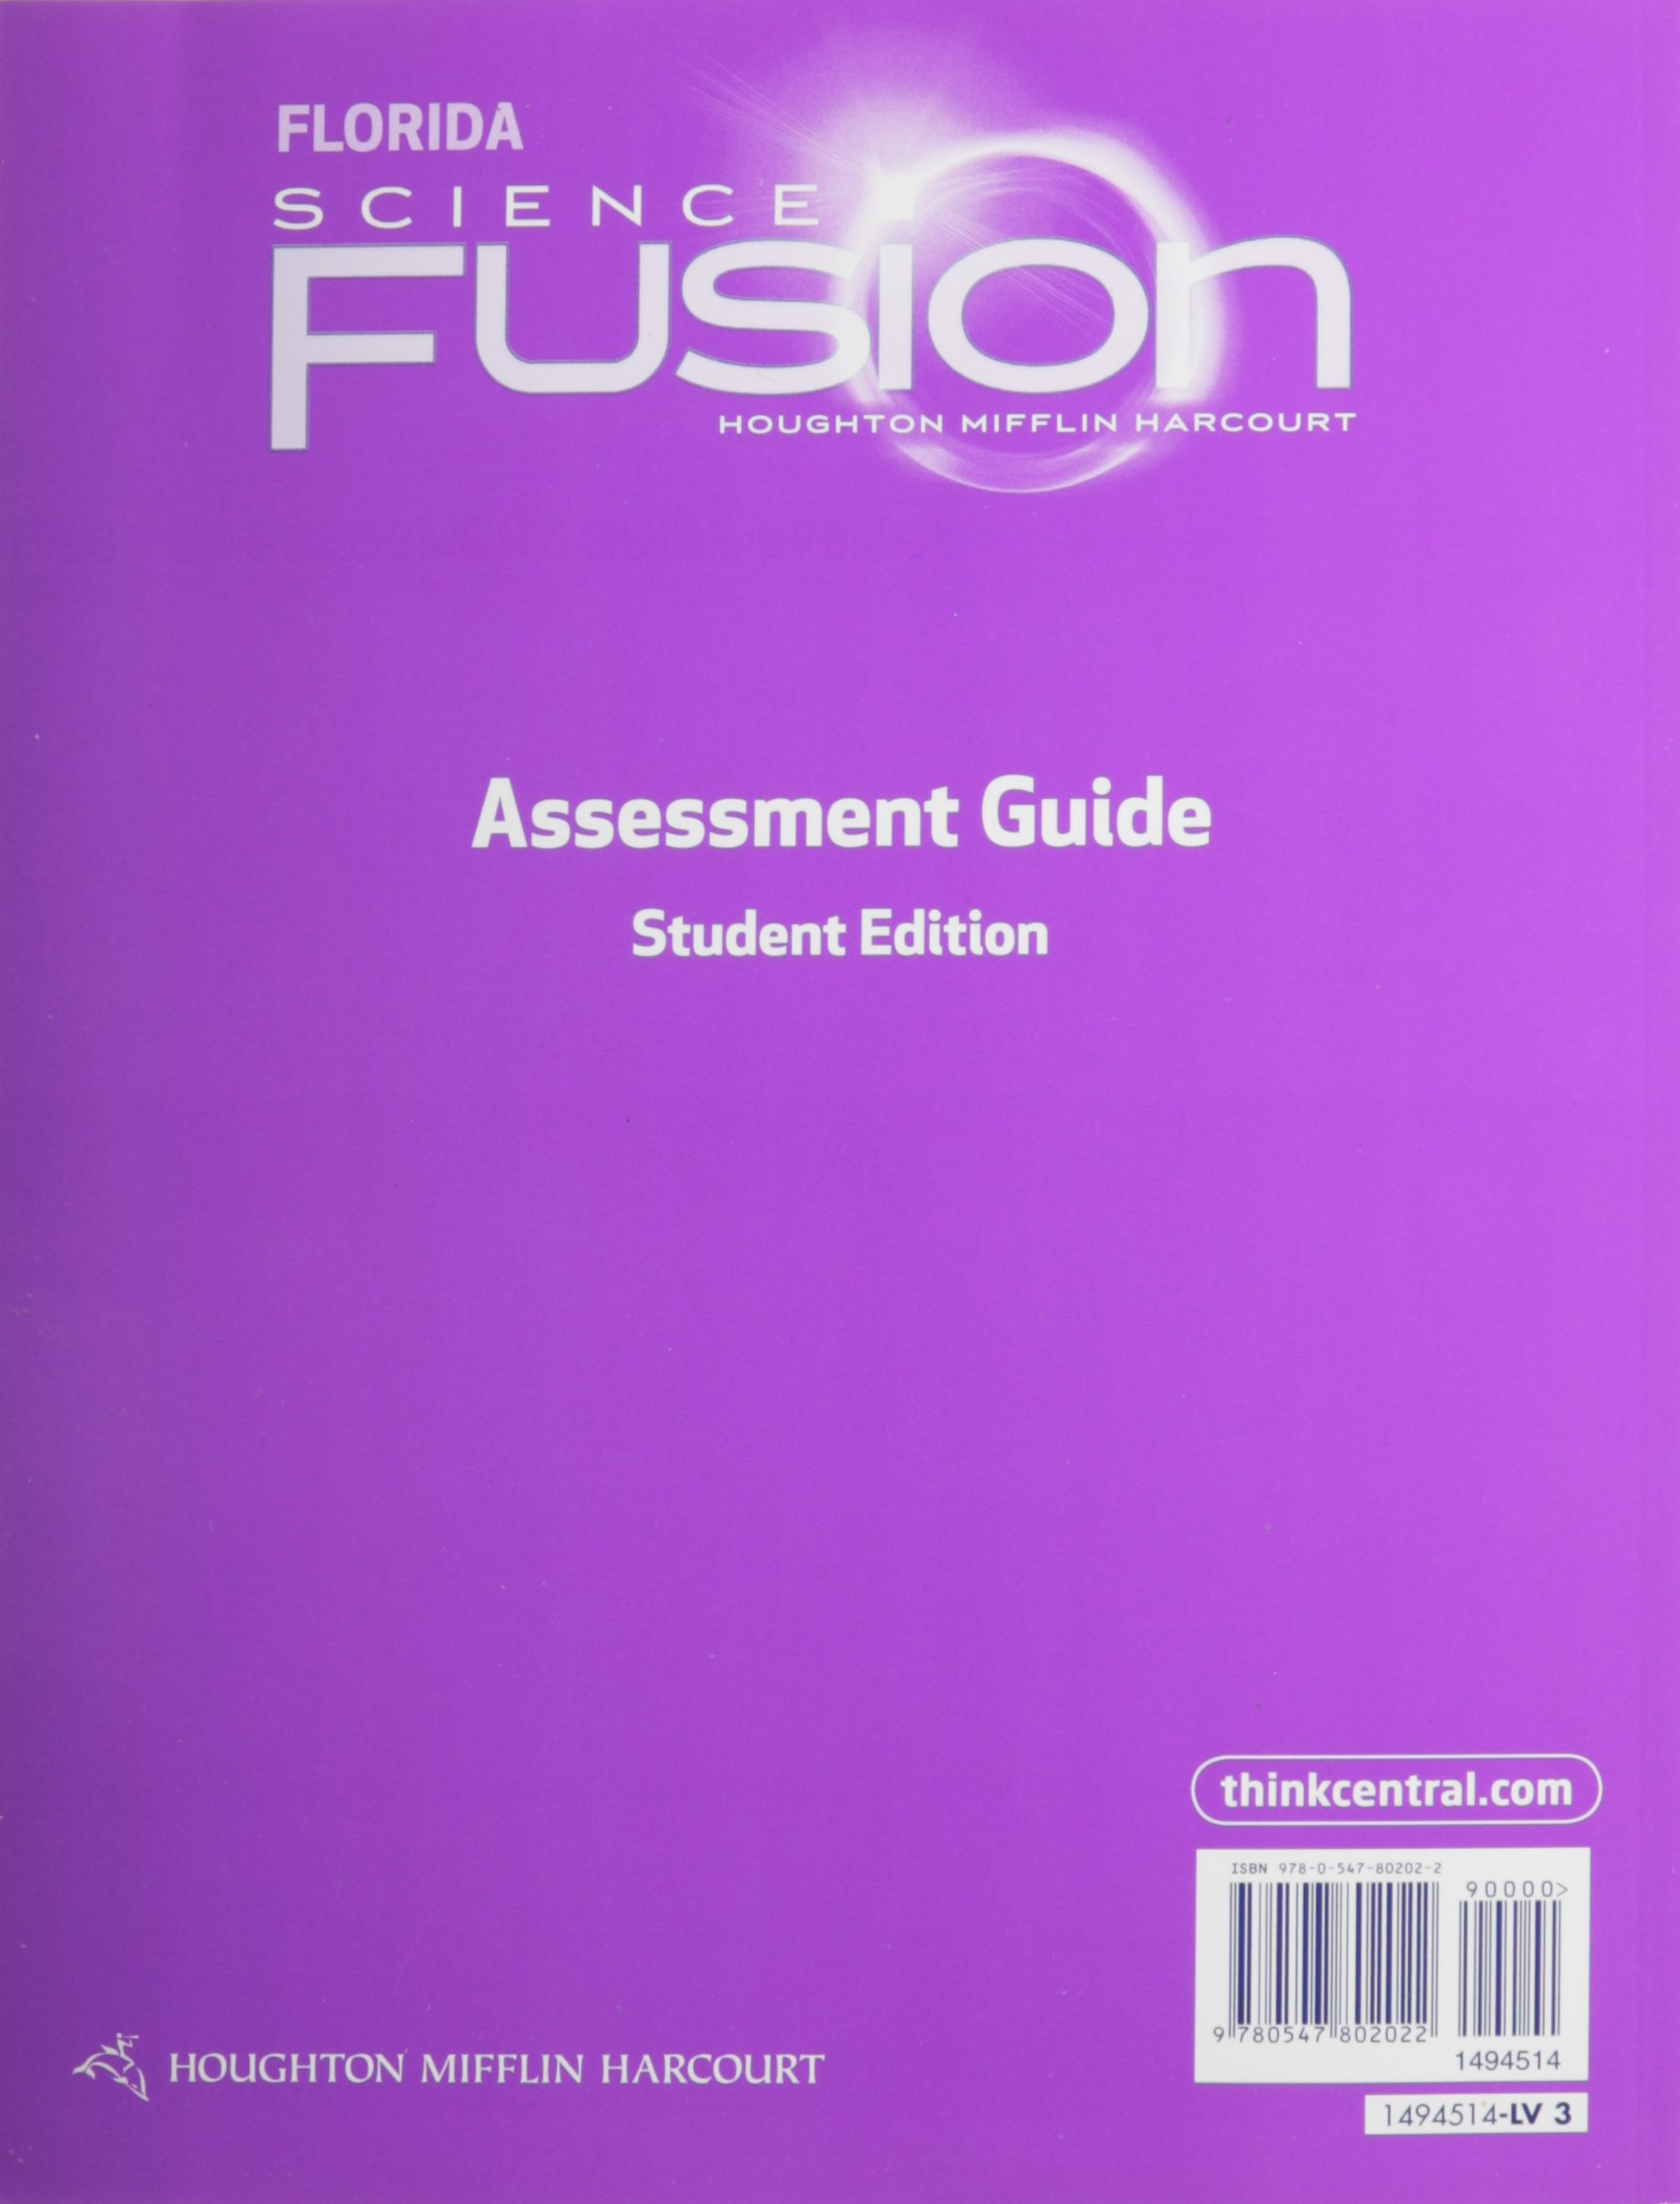 Houghton mifflin harcourt science fusion florida assessment books houghton mifflin harcourt science fusion florida assessment books grade 3 houghton mifflin harcourt 9780547802022 amazon books fandeluxe Images